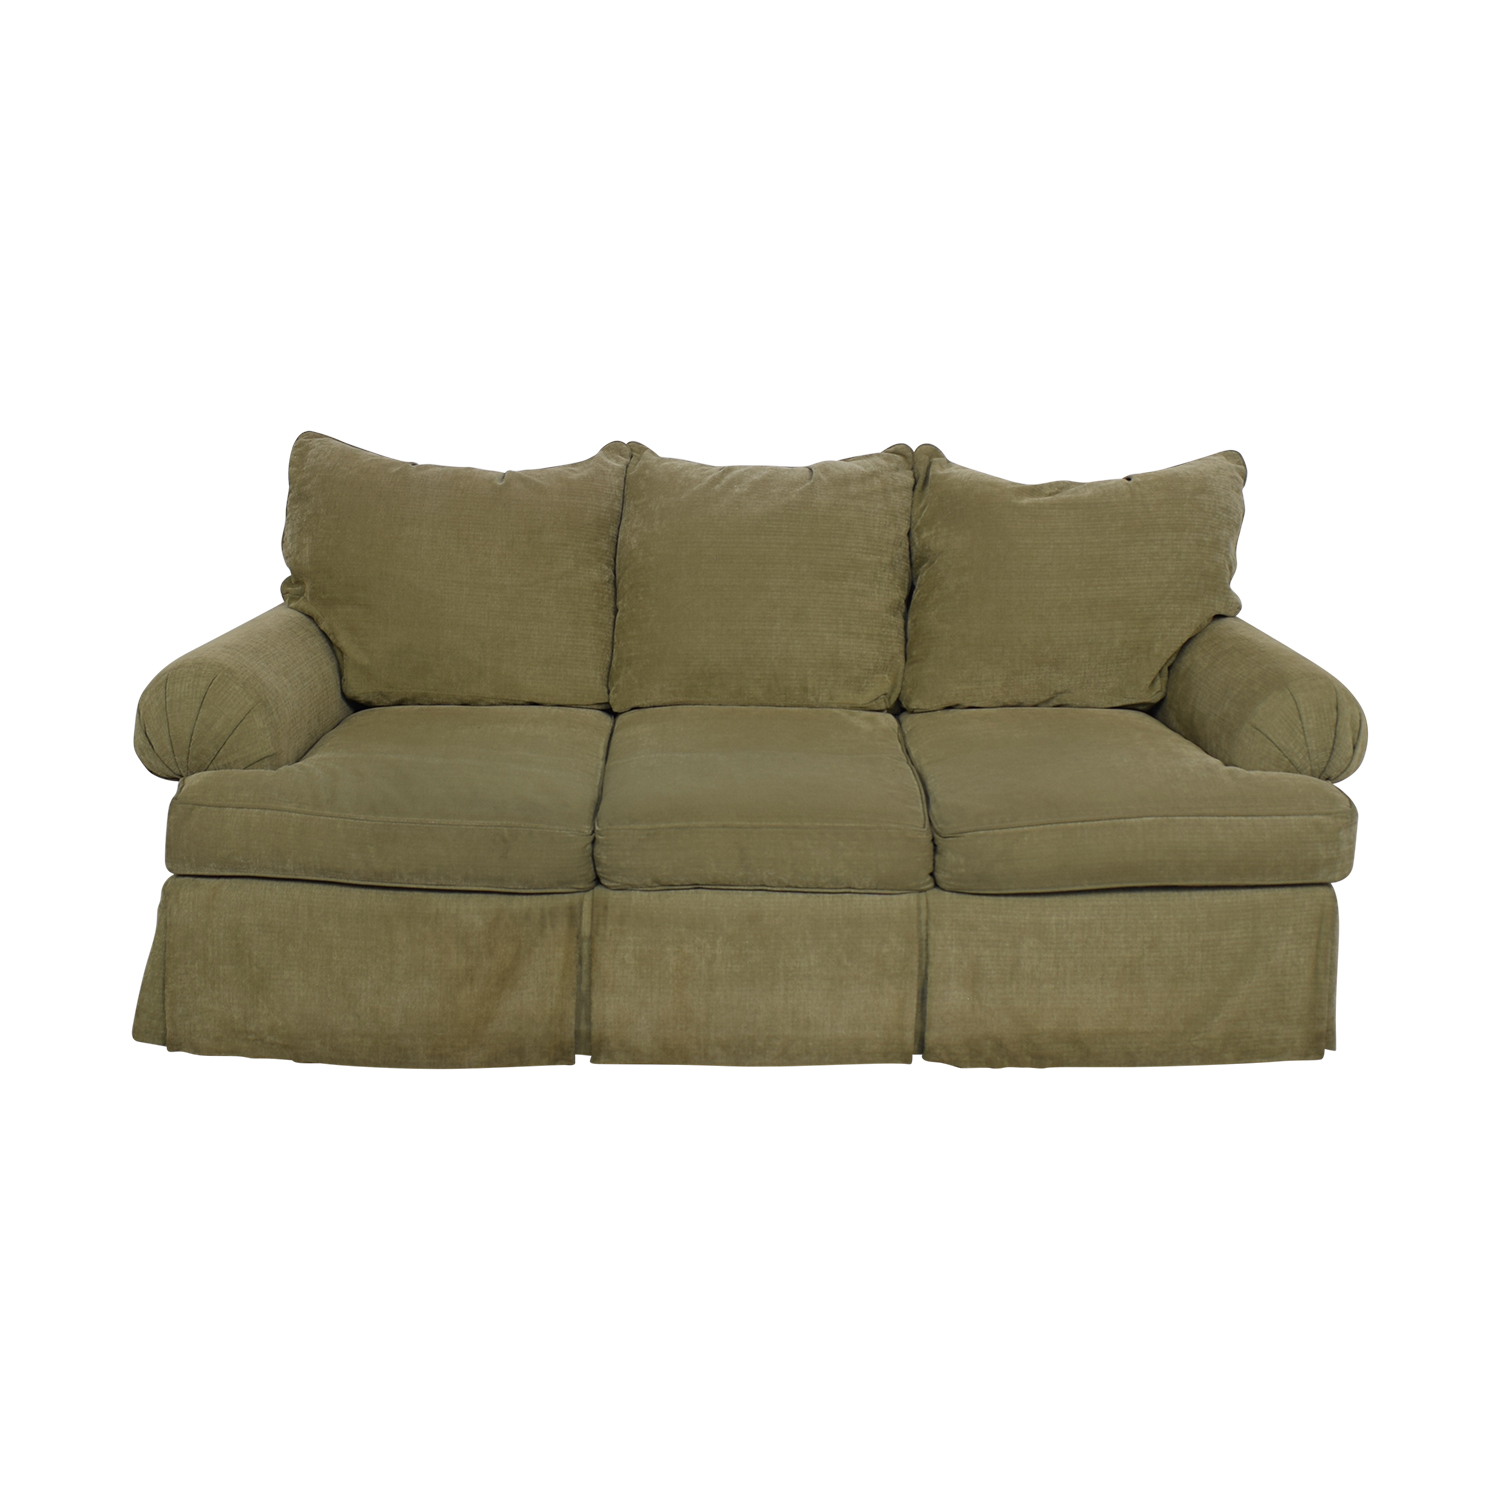 Bernhardt Bernhardt Three Cushion Sofa second hand